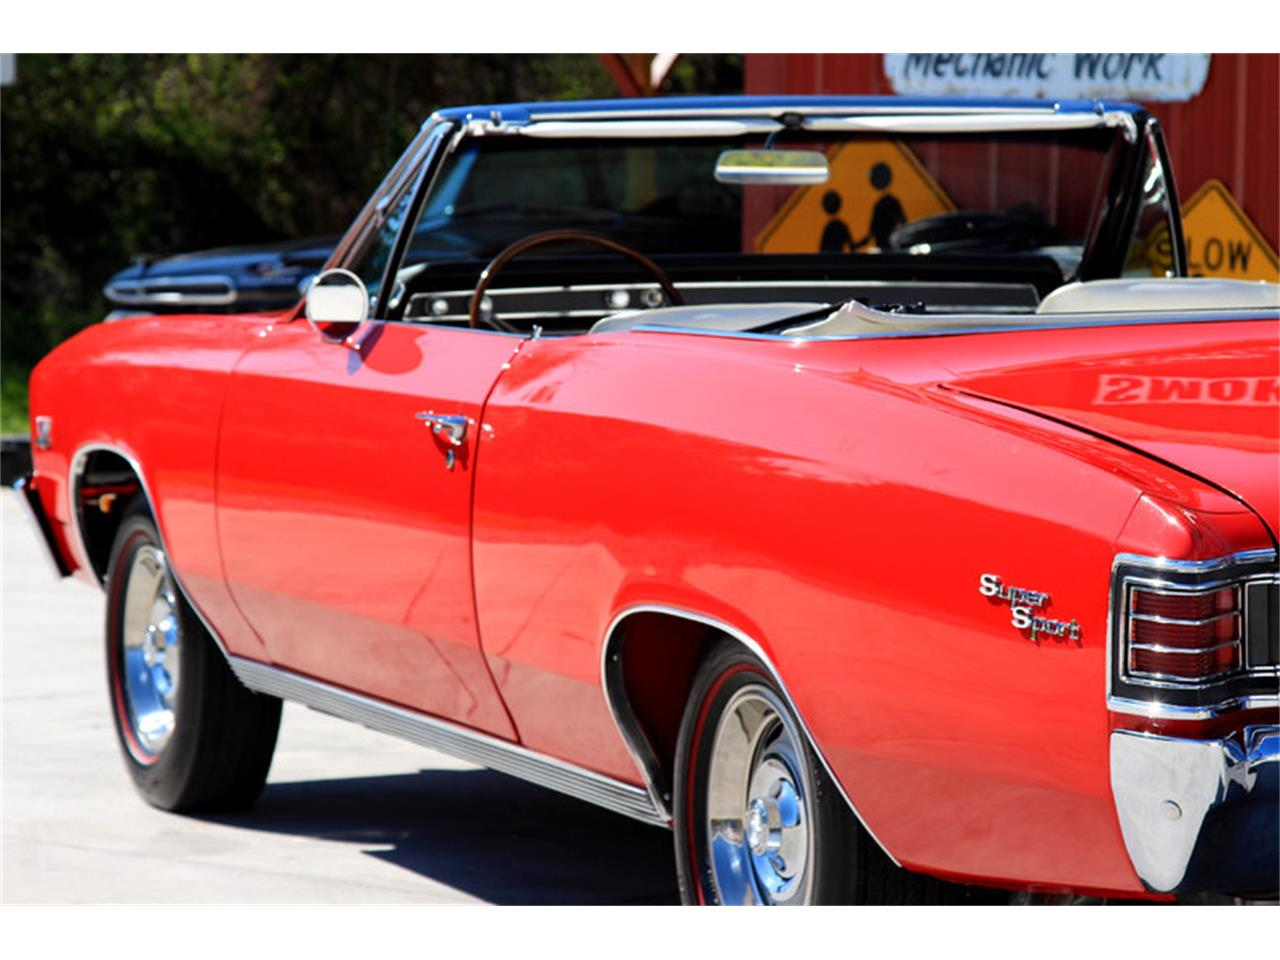 Large Picture of 1967 Chevrolet Chevelle SS located in Tennessee - $74,995.00 Offered by Smoky Mountain Traders - GHLU